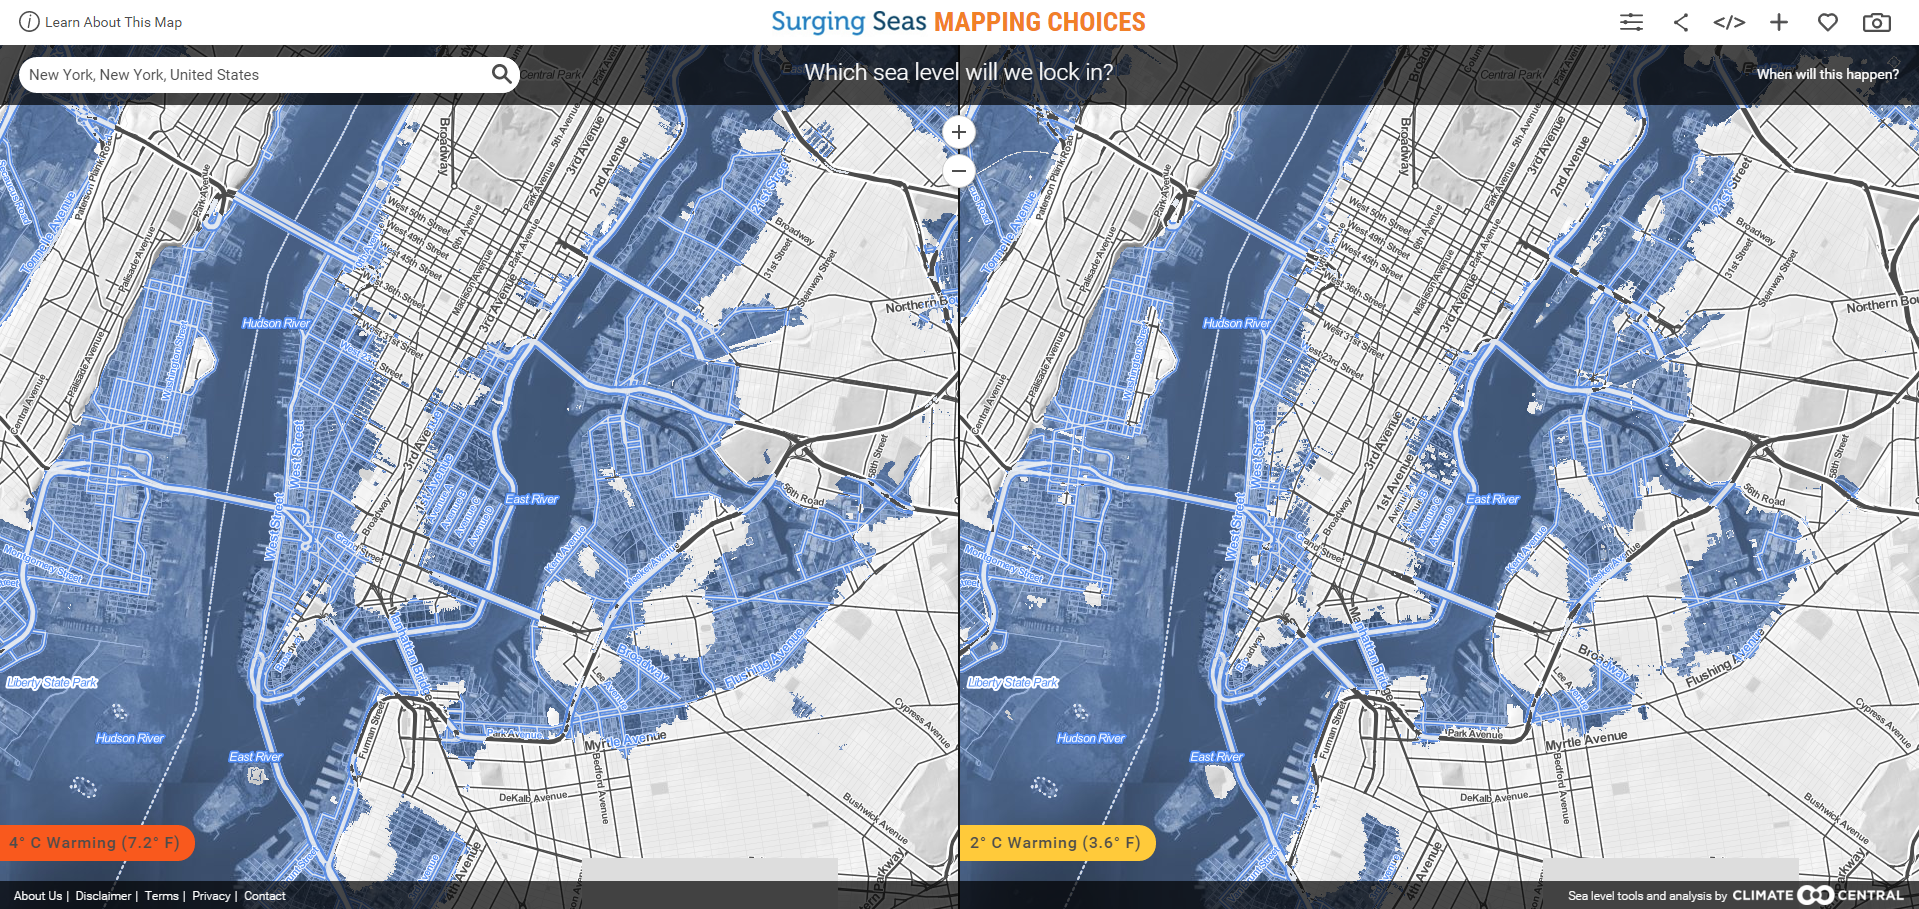 1511B32-new york sea level rise predictor map